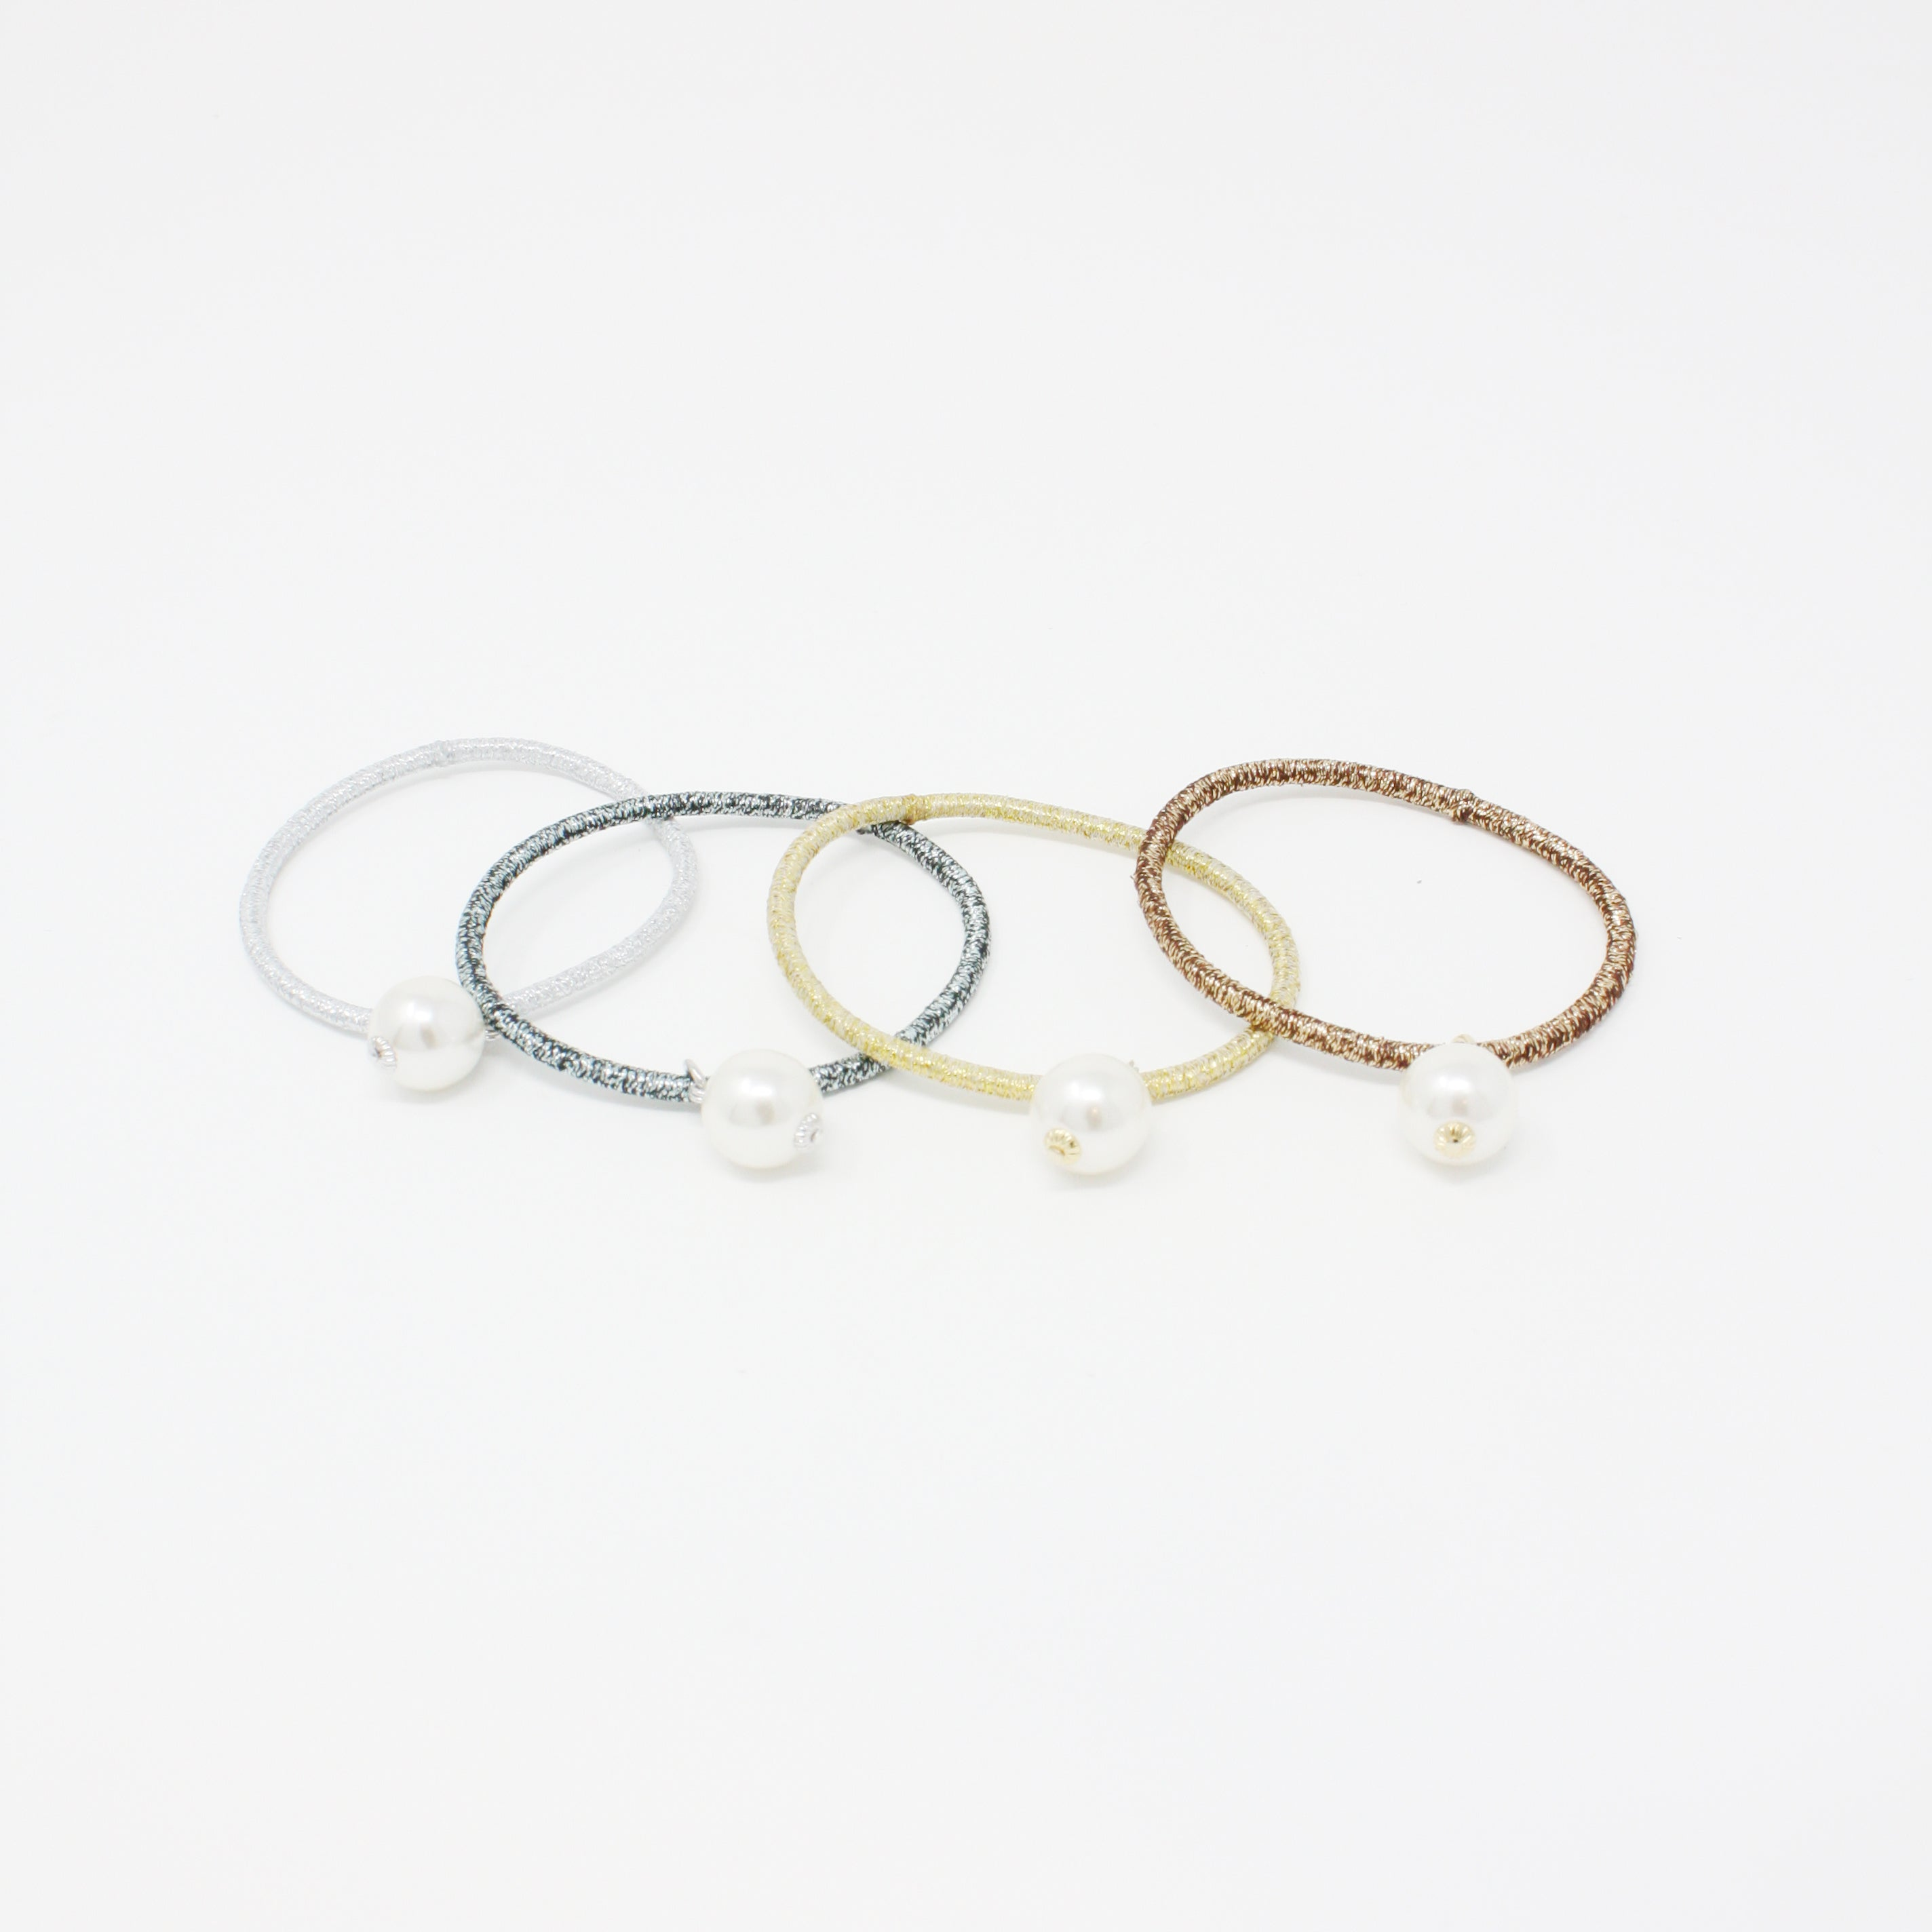 LFPT0630 - Pearl Colored Hair Tie